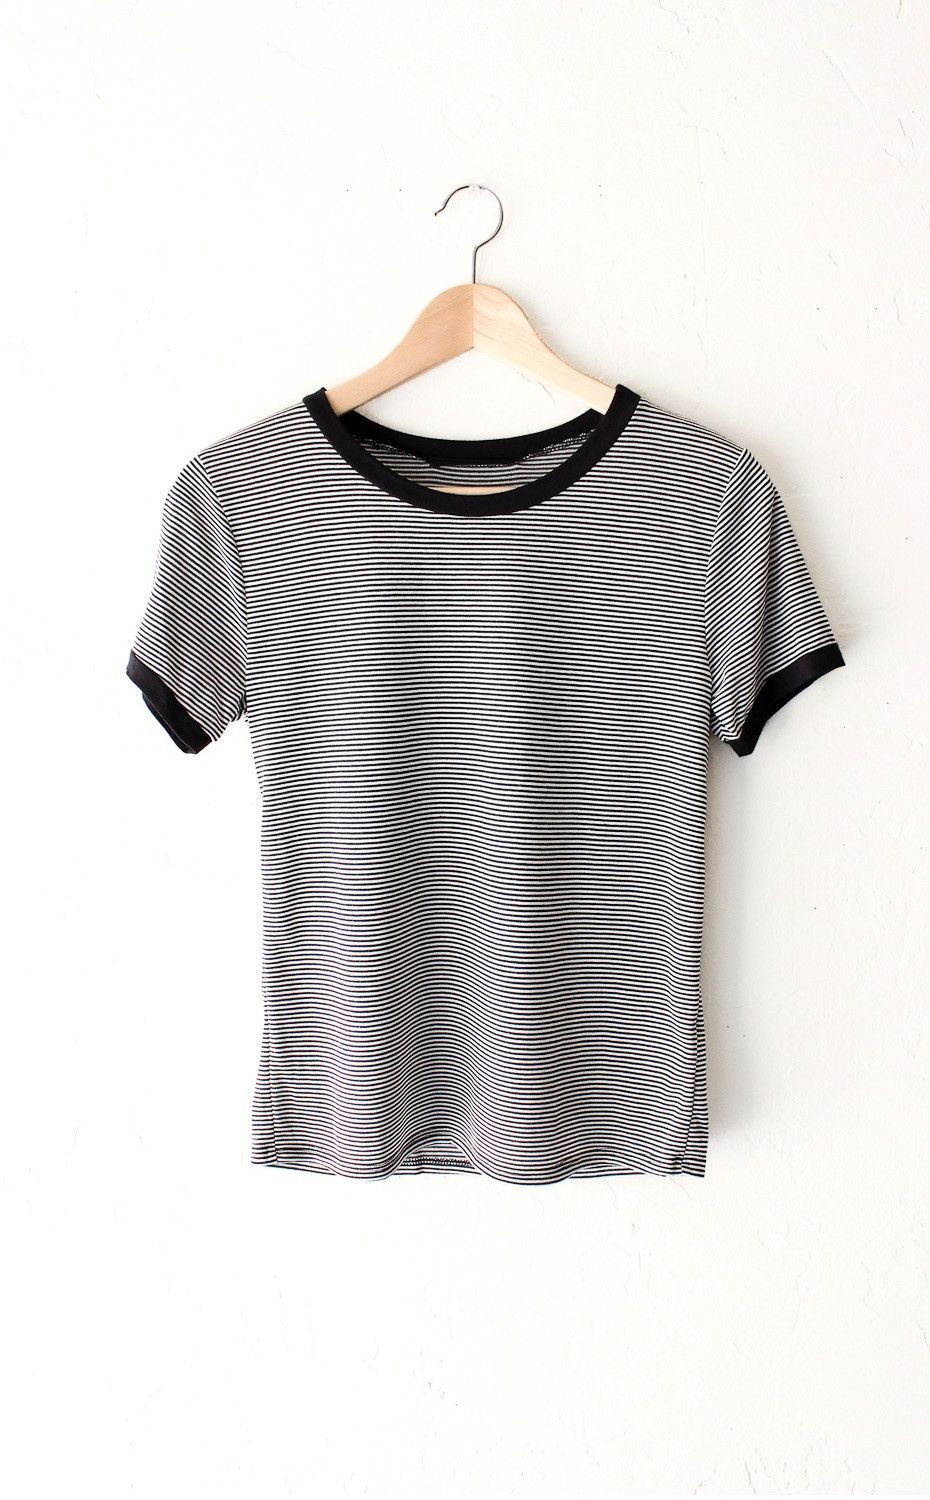 """- Description Details: Soft & short sleeve ringer tee with all over horizontal stripes in black/white and black contrast collar & sleeve bands. Relaxed fit. Measurements: (Size Guide) S: 33"""" bust, 22."""